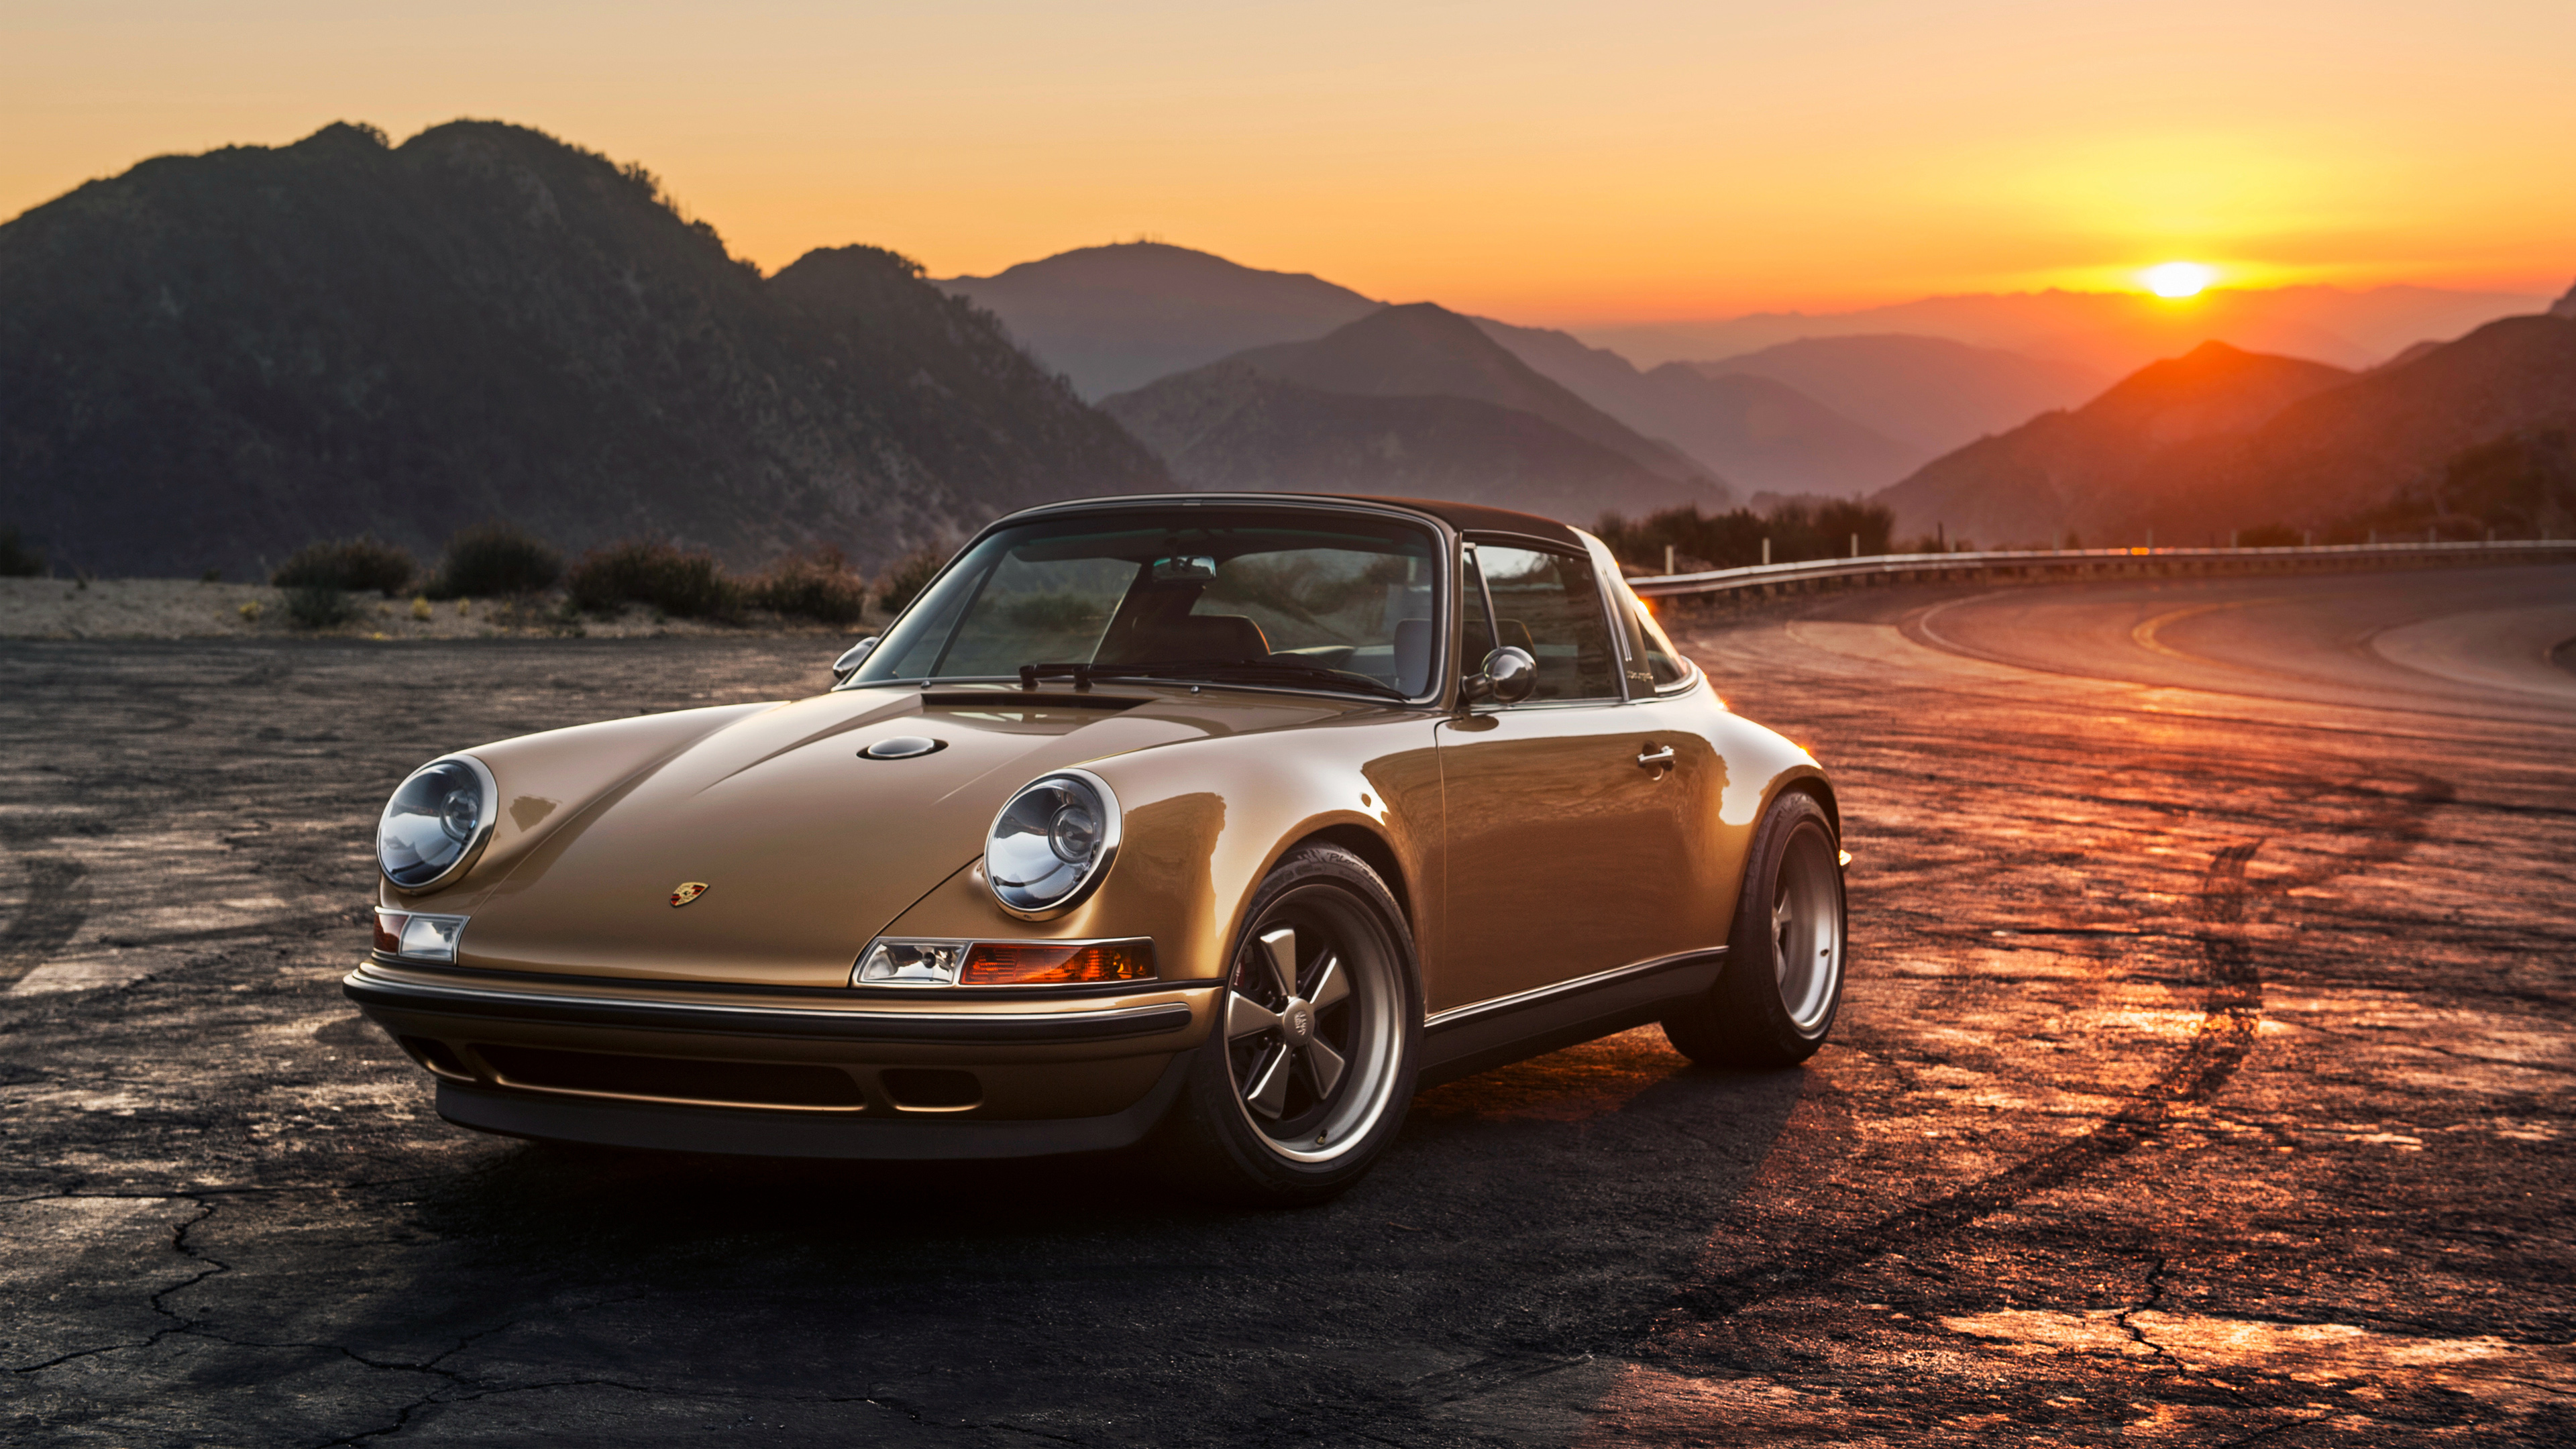 2015 singer porsche 911 targa wallpaper hd car wallpapers. Black Bedroom Furniture Sets. Home Design Ideas